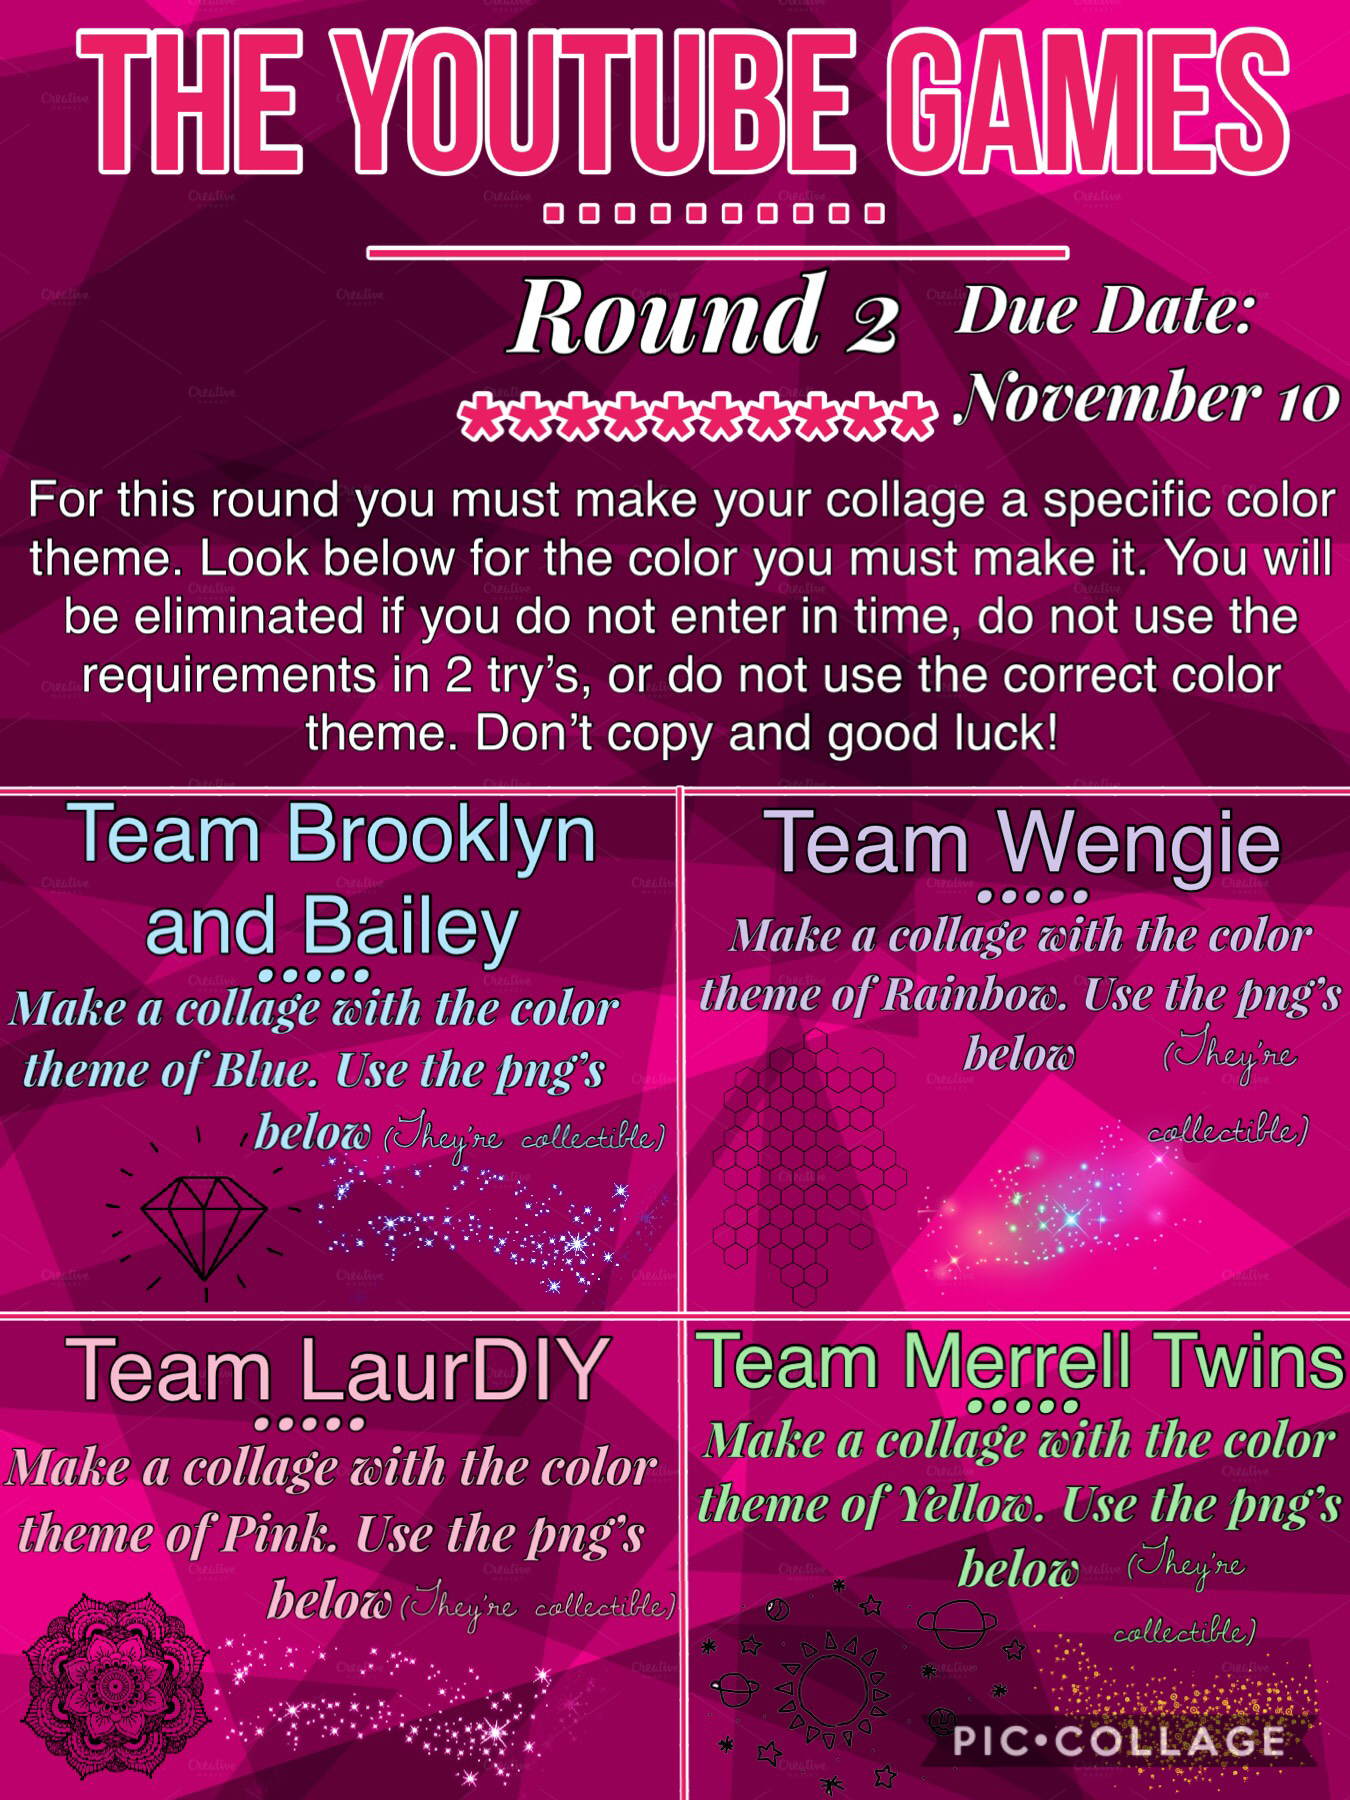 Due on November 10th! You will not be competing if you were eliminated!